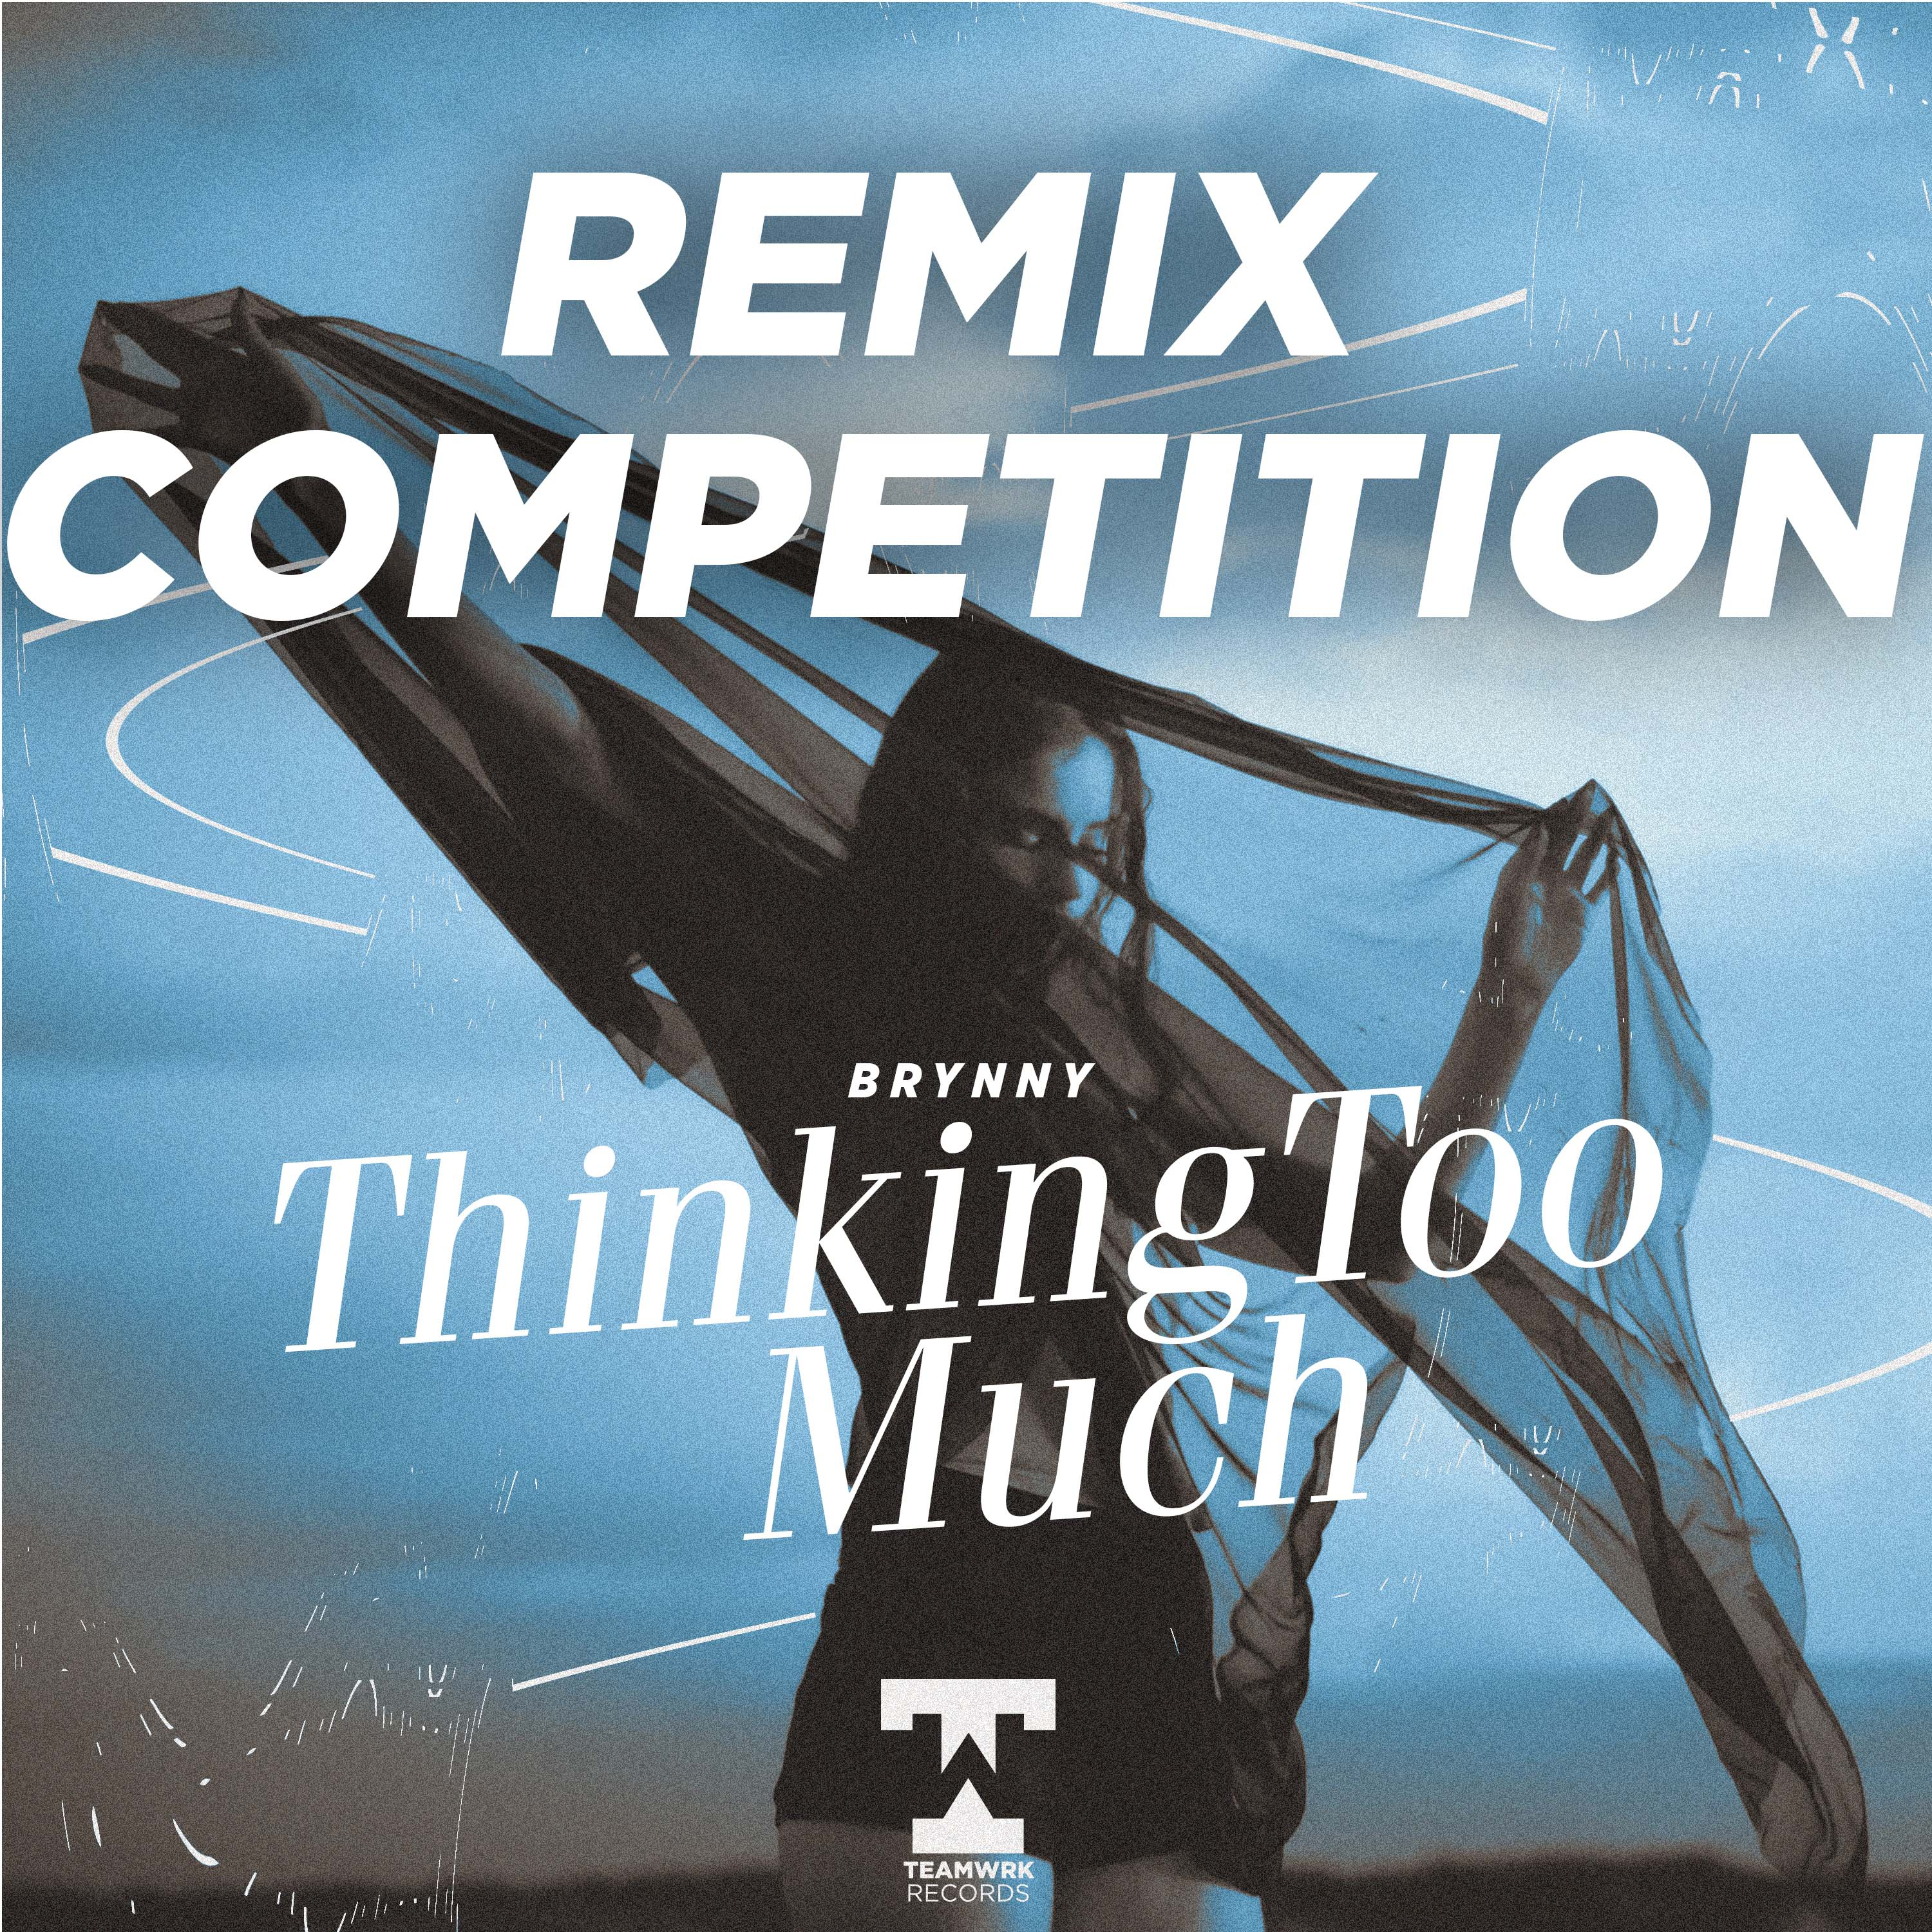 Thinking Too Much (REMIX COMP) by Brynny | Free Download on Hypeddit